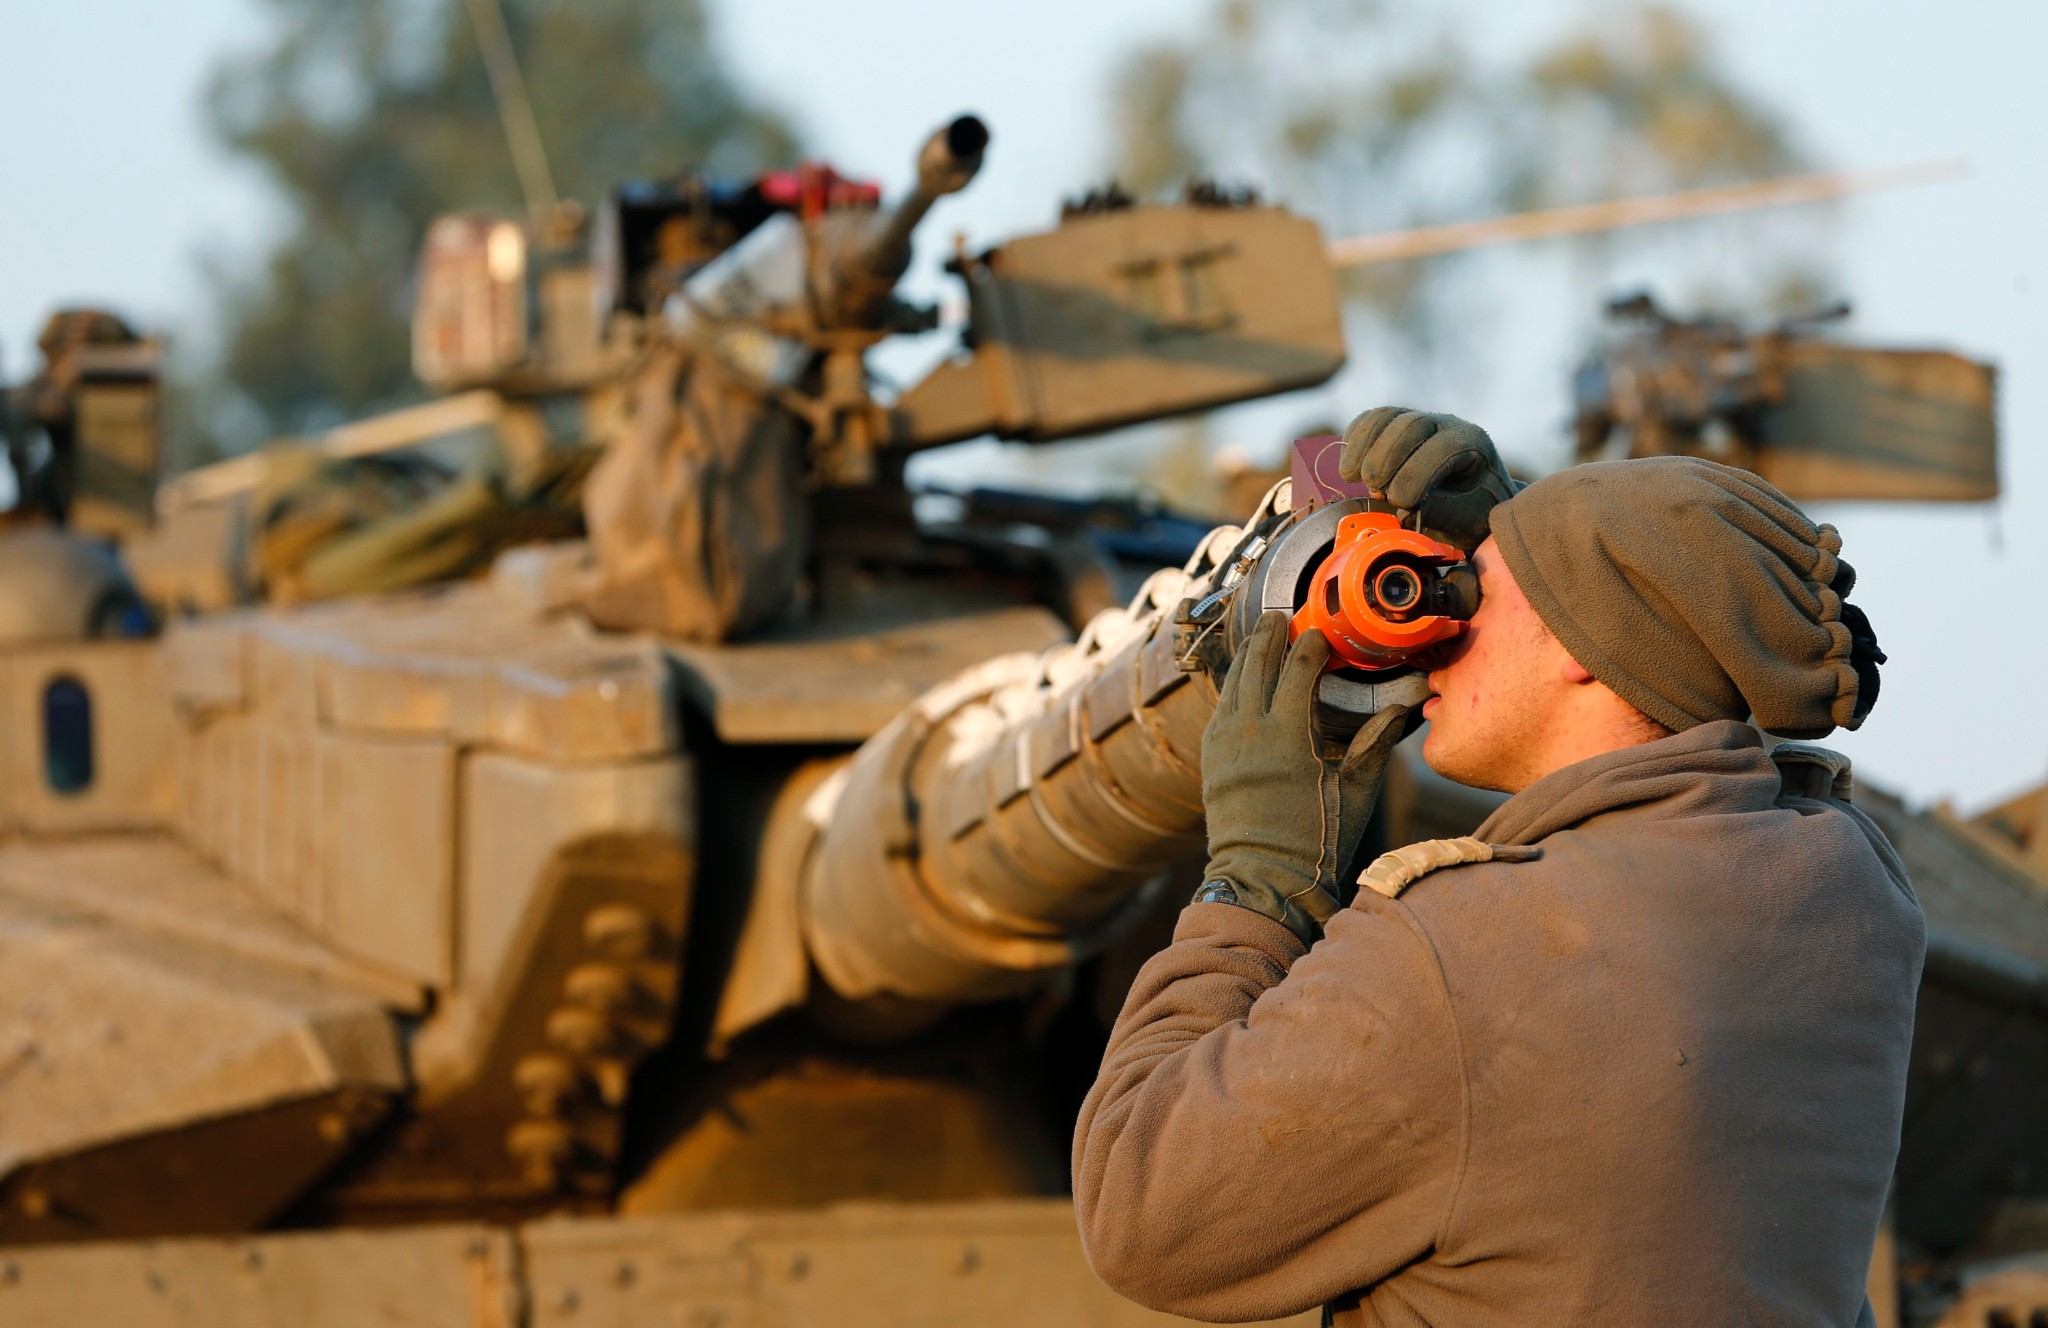 Photo: An Israeli soldier checks the gun sighting on a main battle tank at a staging area near the border.